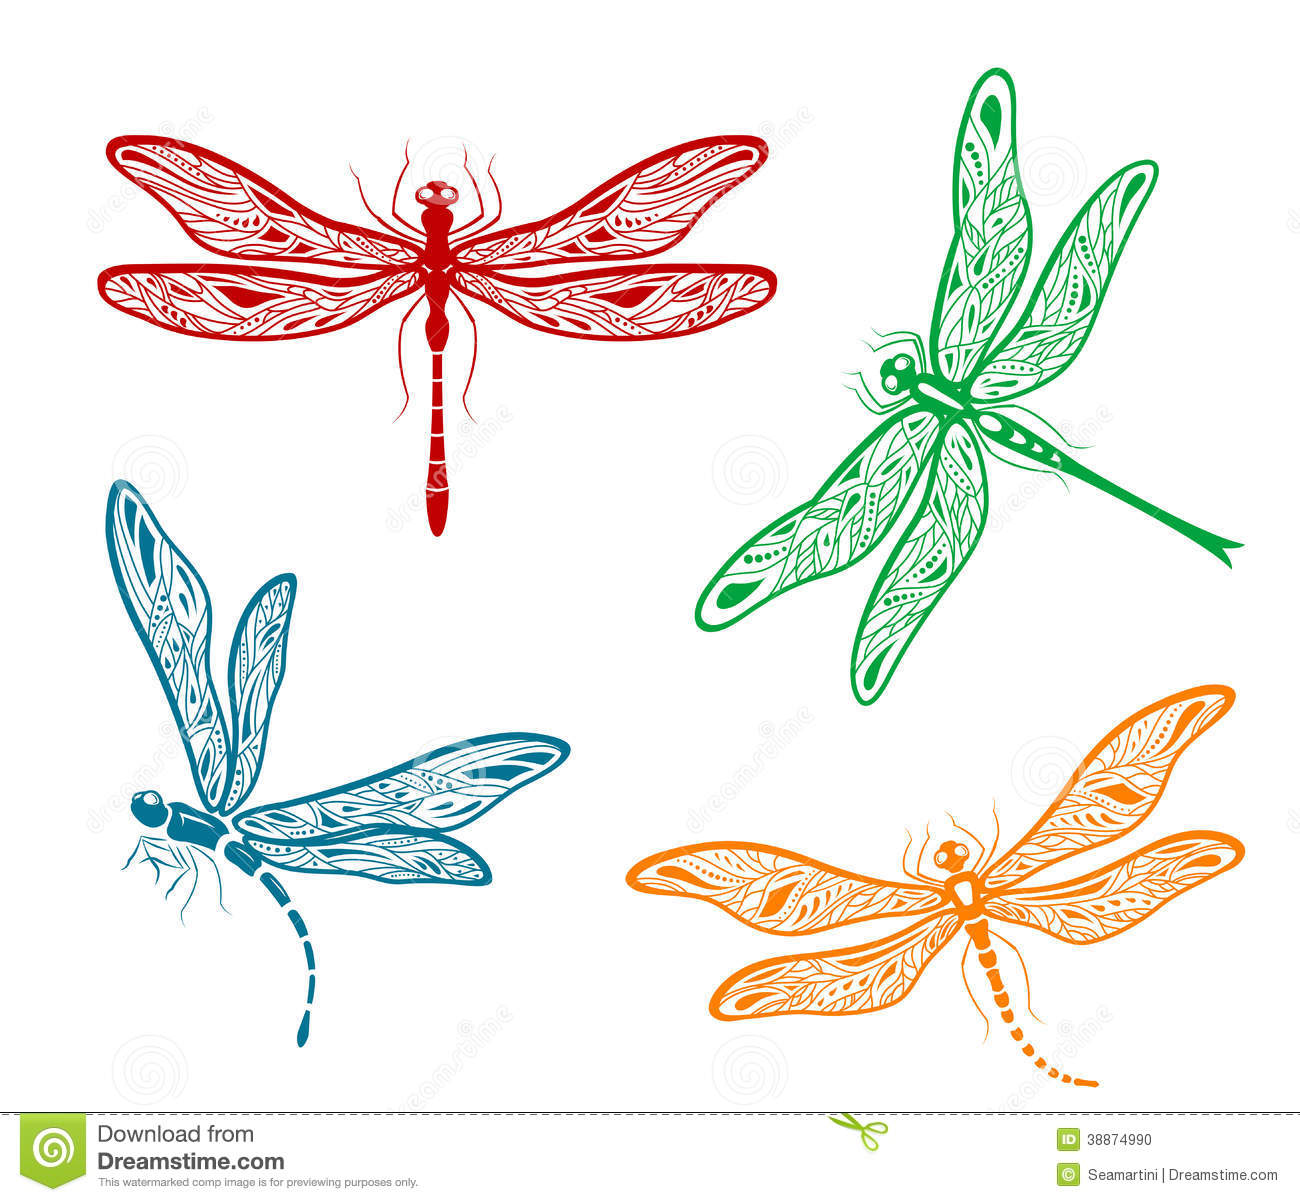 Dragonfly vector.